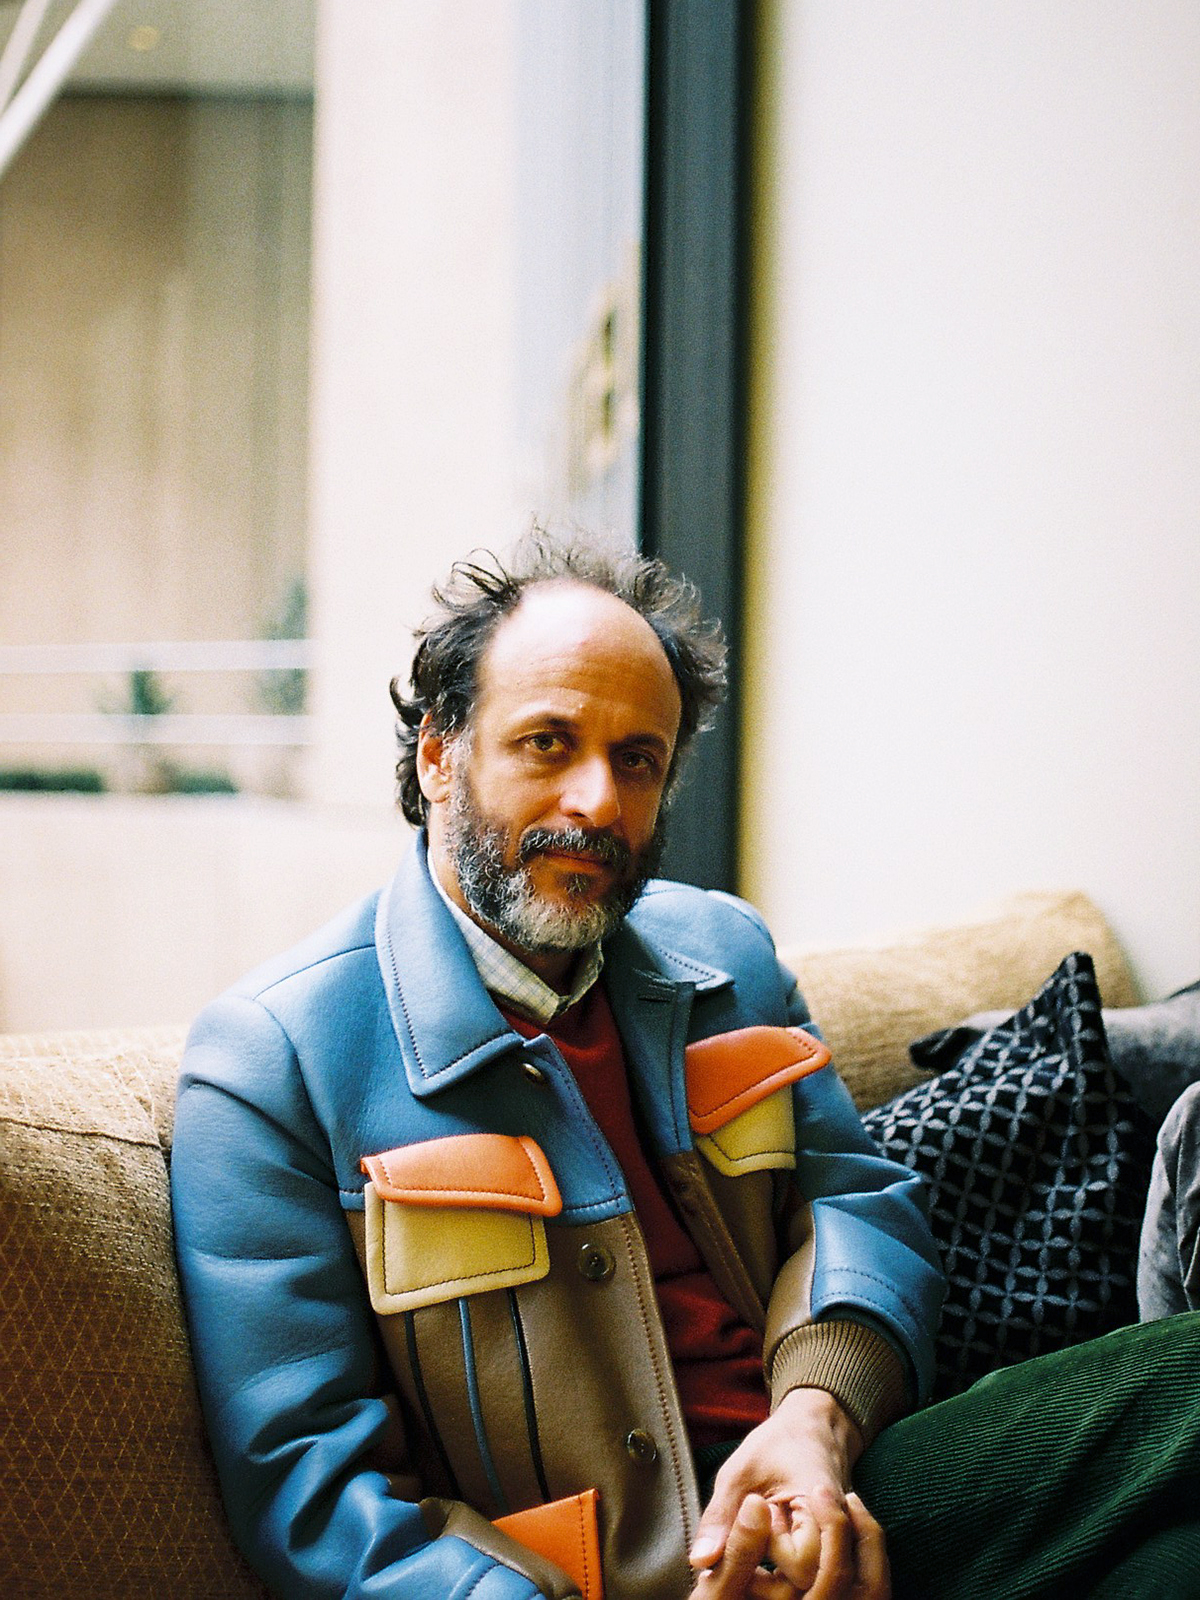 Lindsay Interview | Luca Guadagnino on his tender new film 'Call Me By Your Name' | Photo by Beth Wilkinson for Lindsay